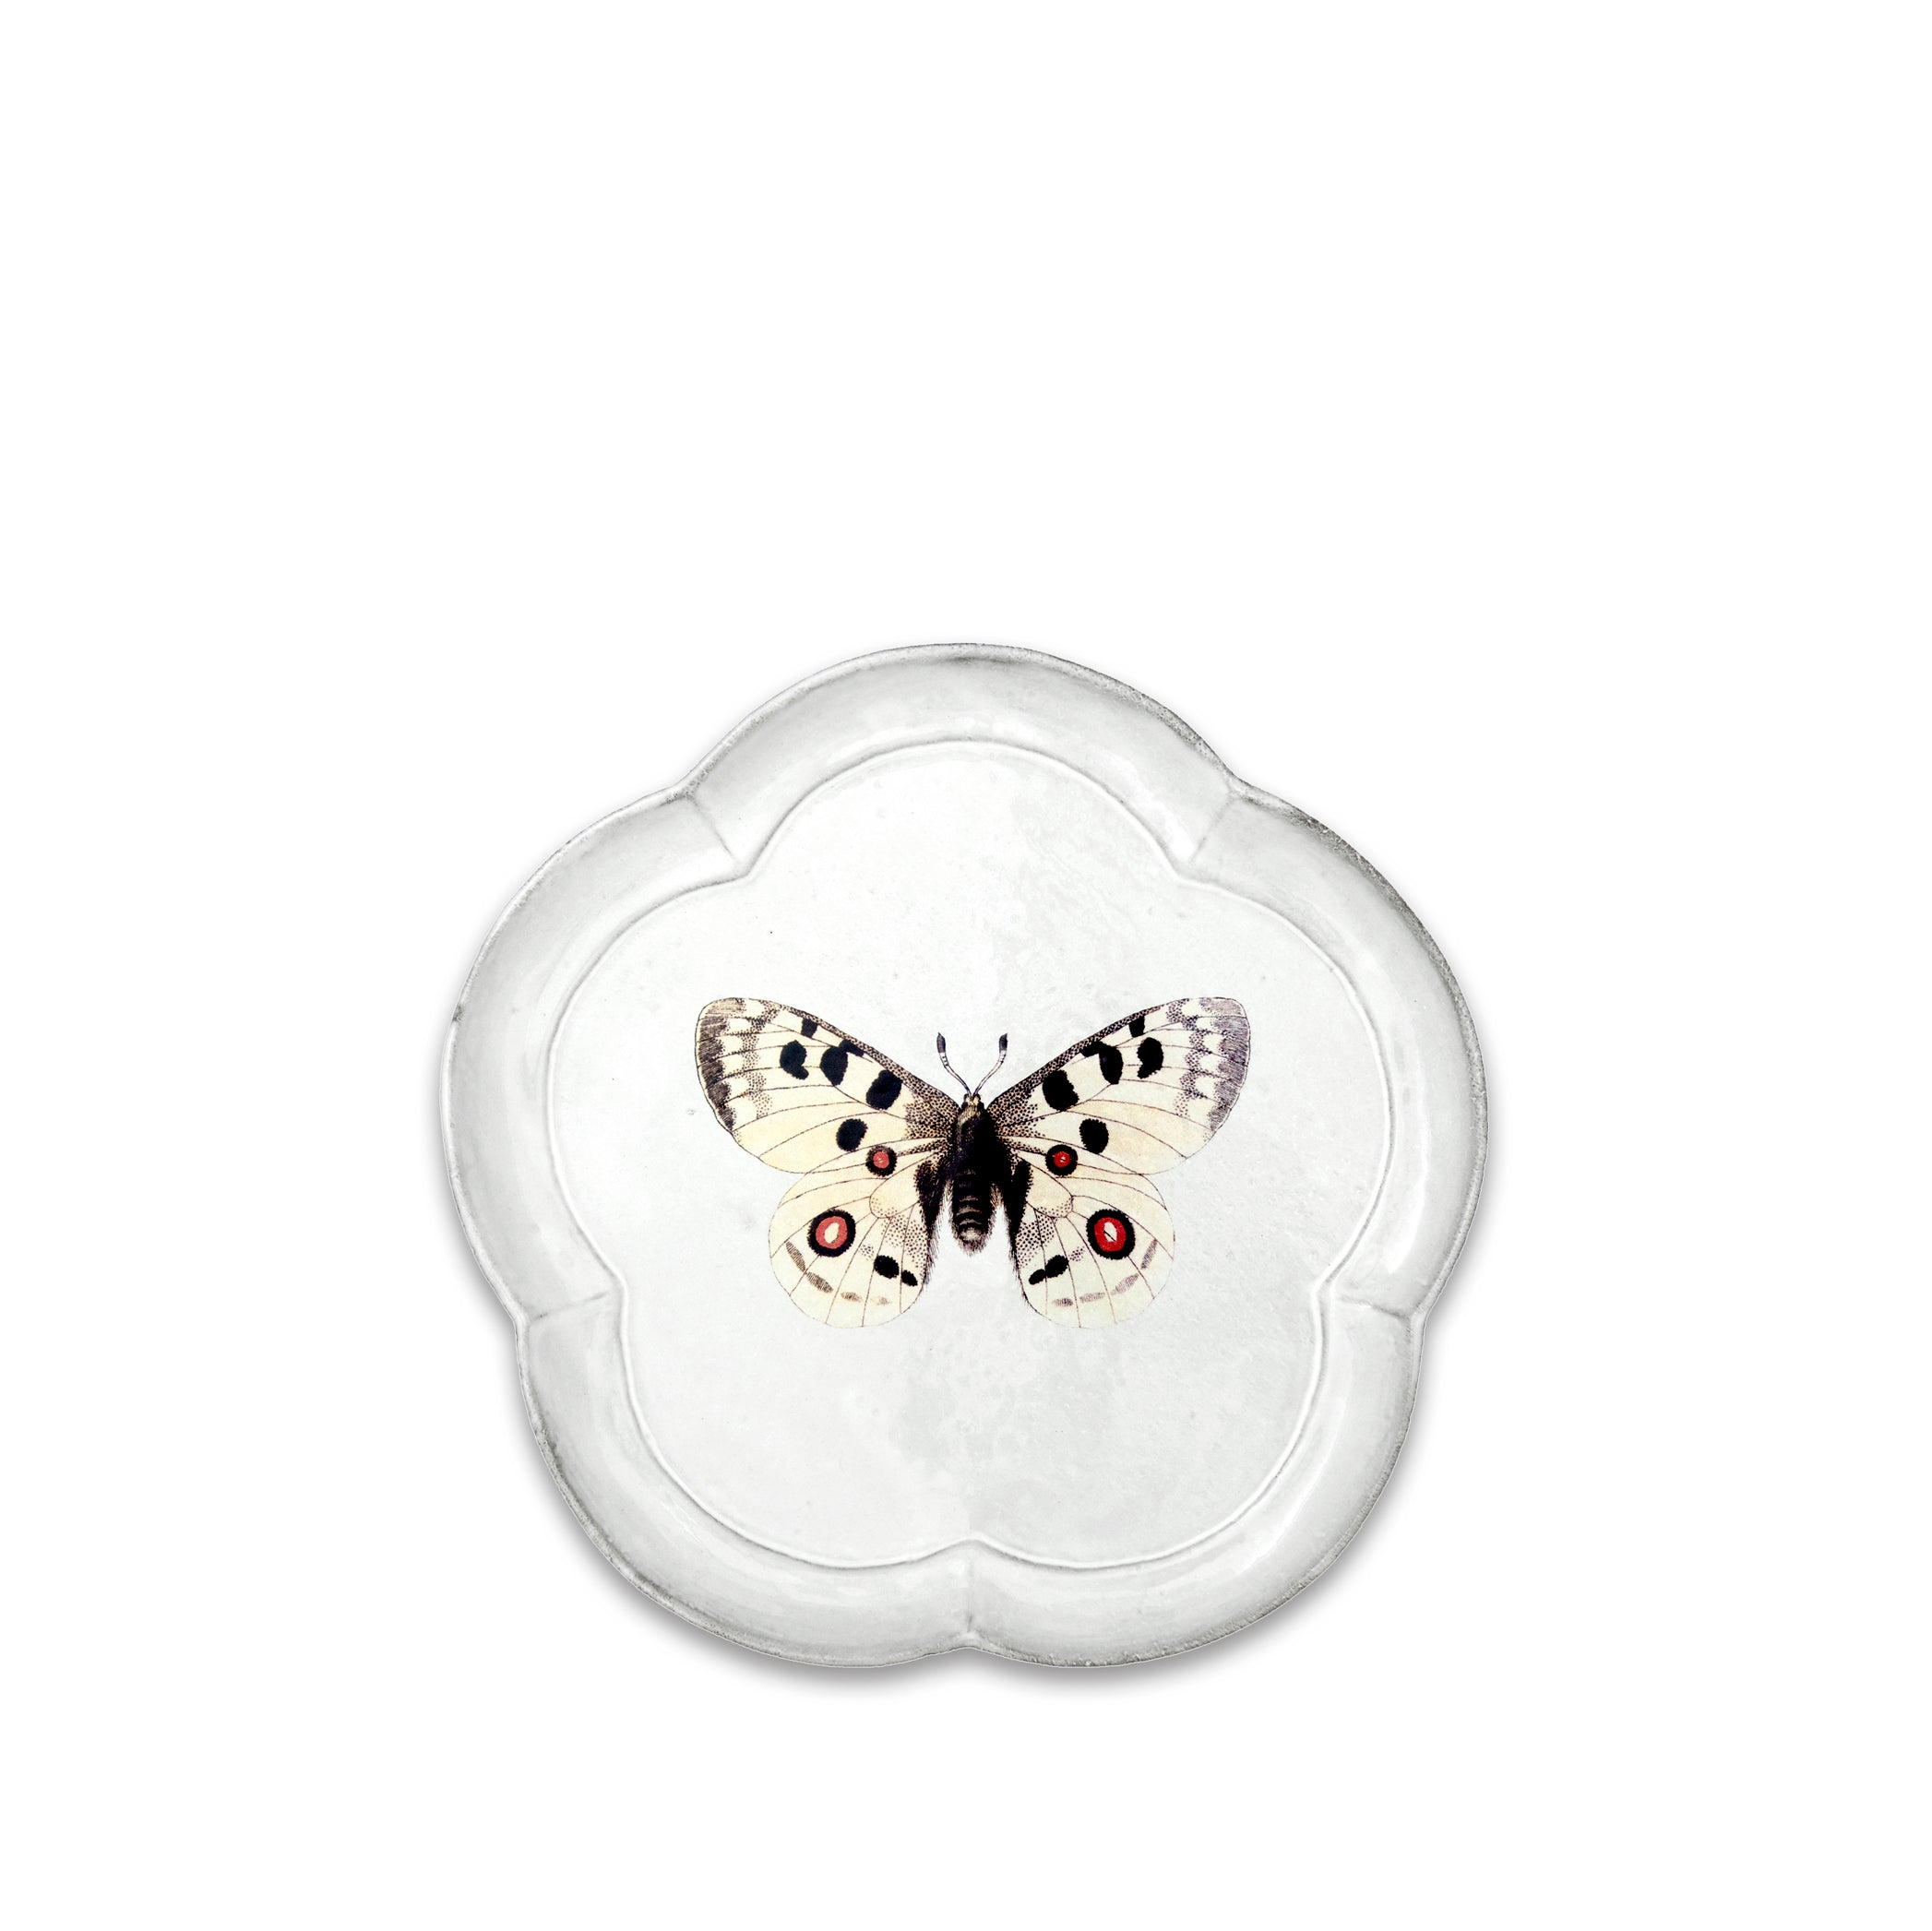 Apollo Butterfly Plate by Astier de Villatte